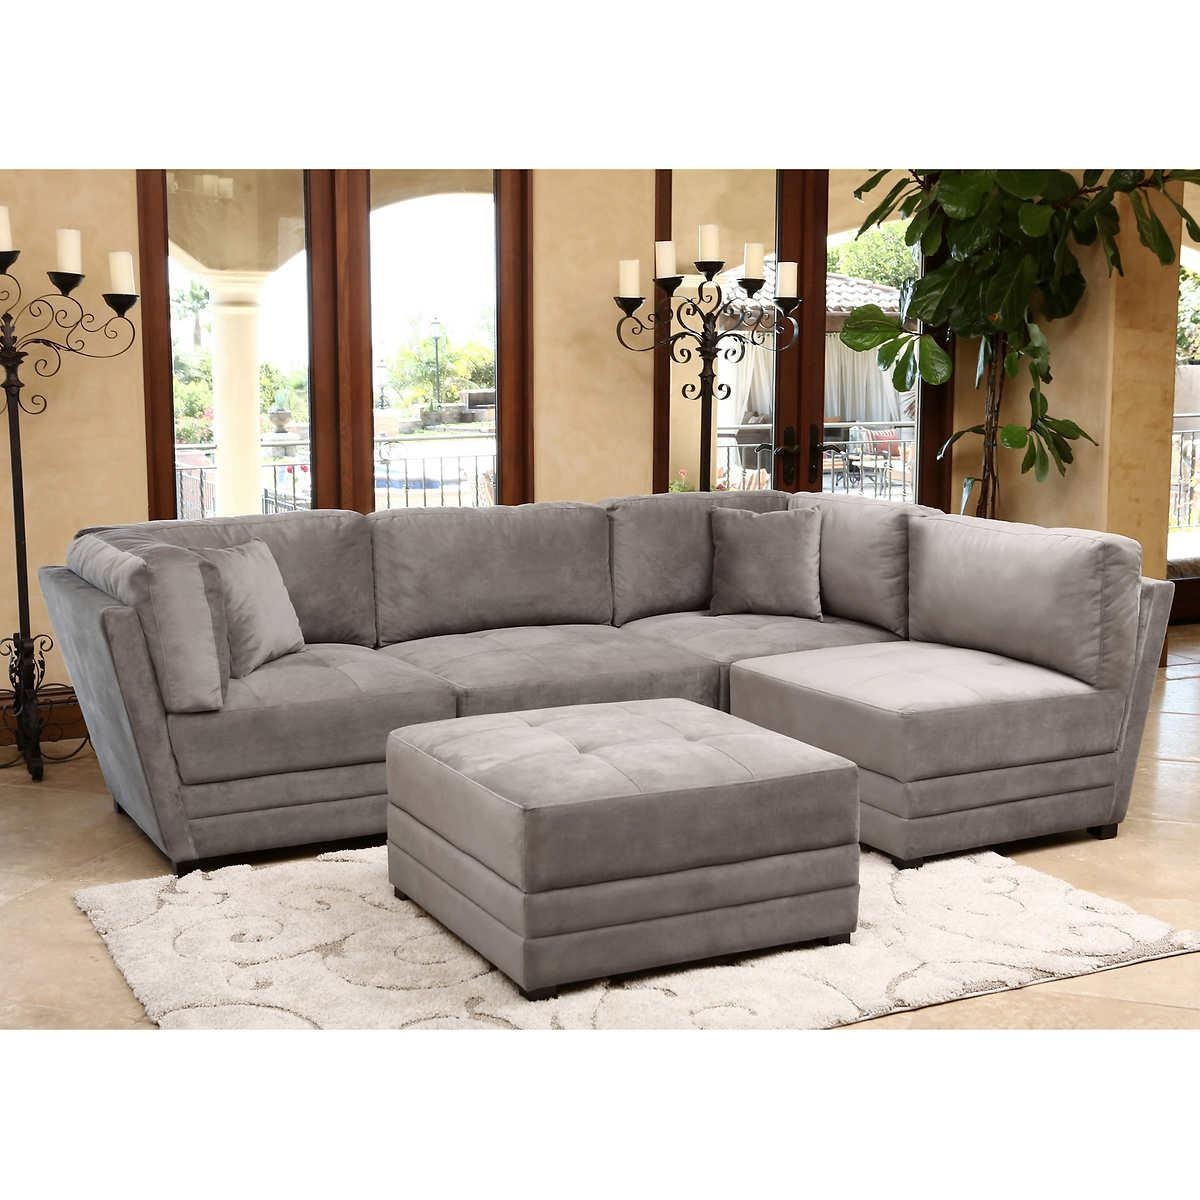 Furniture: Exciting Sectional Sofas Costco For Your Family Room Intended For Deep Sectionals (Image 9 of 15)